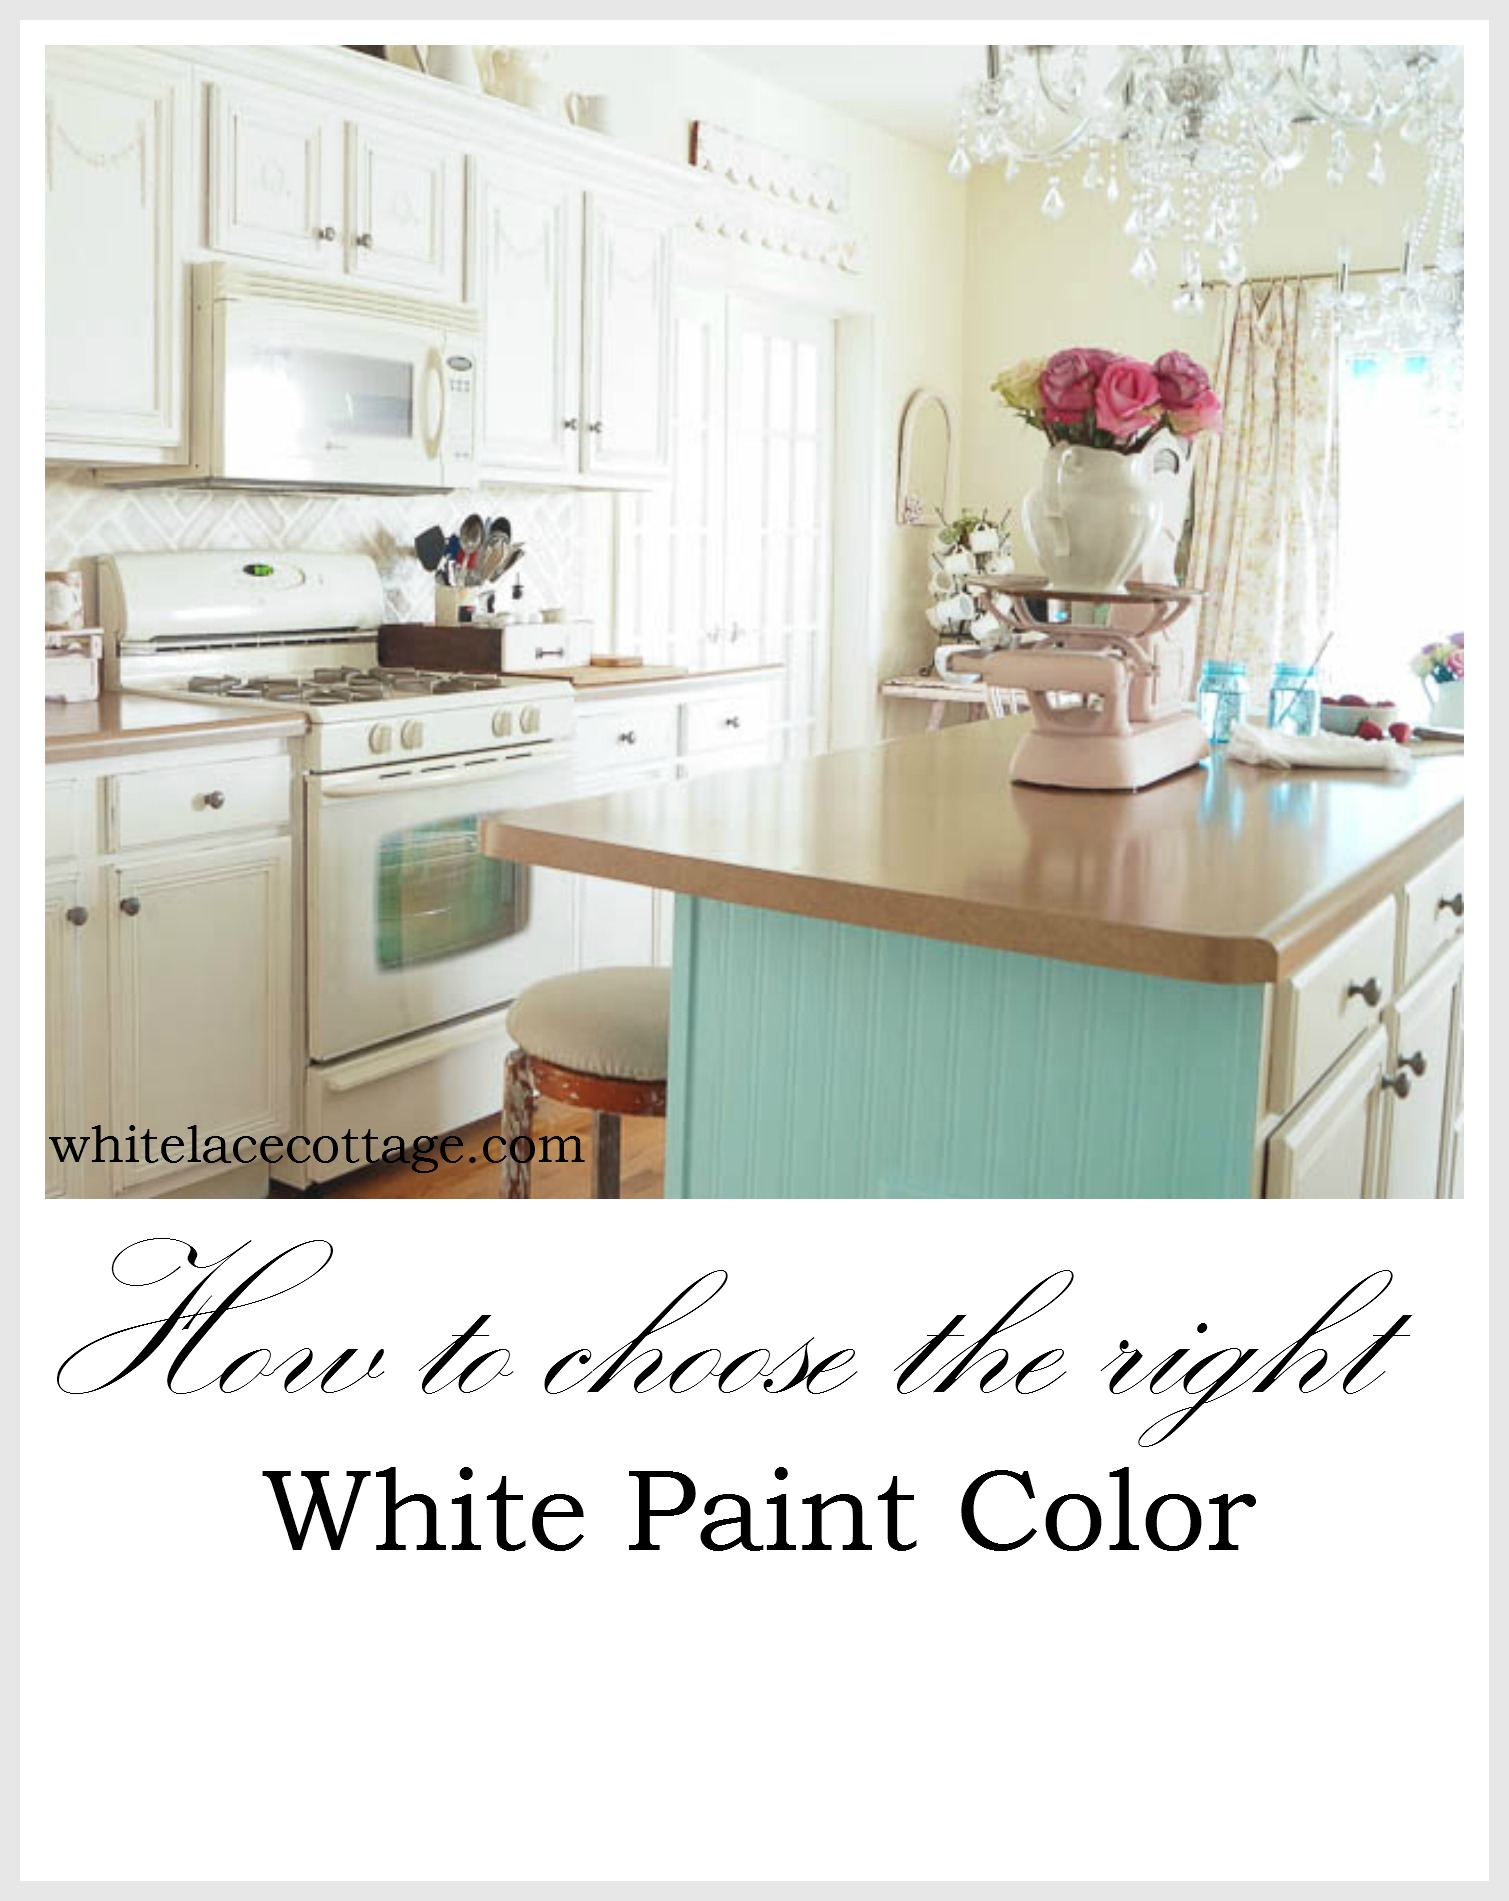 How to choose the right white paint color white lace cottage - How to pick paint colors ...